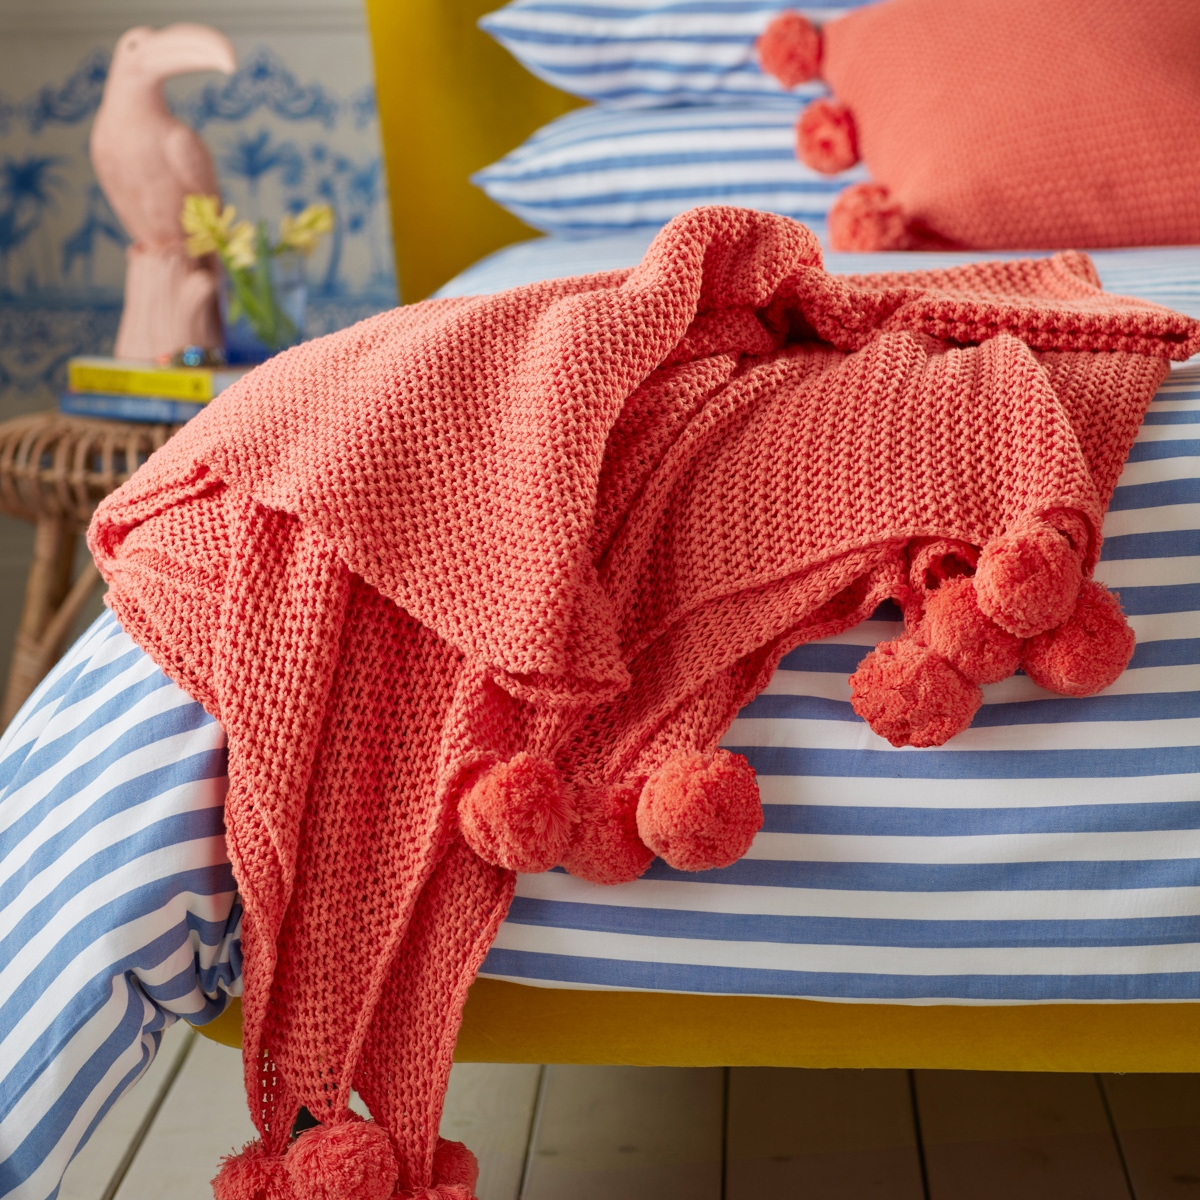 Secret-Linen-Store-Hot-Coral-pompom-throw-£95-1600x1200px-crop-1200x1200.jpg